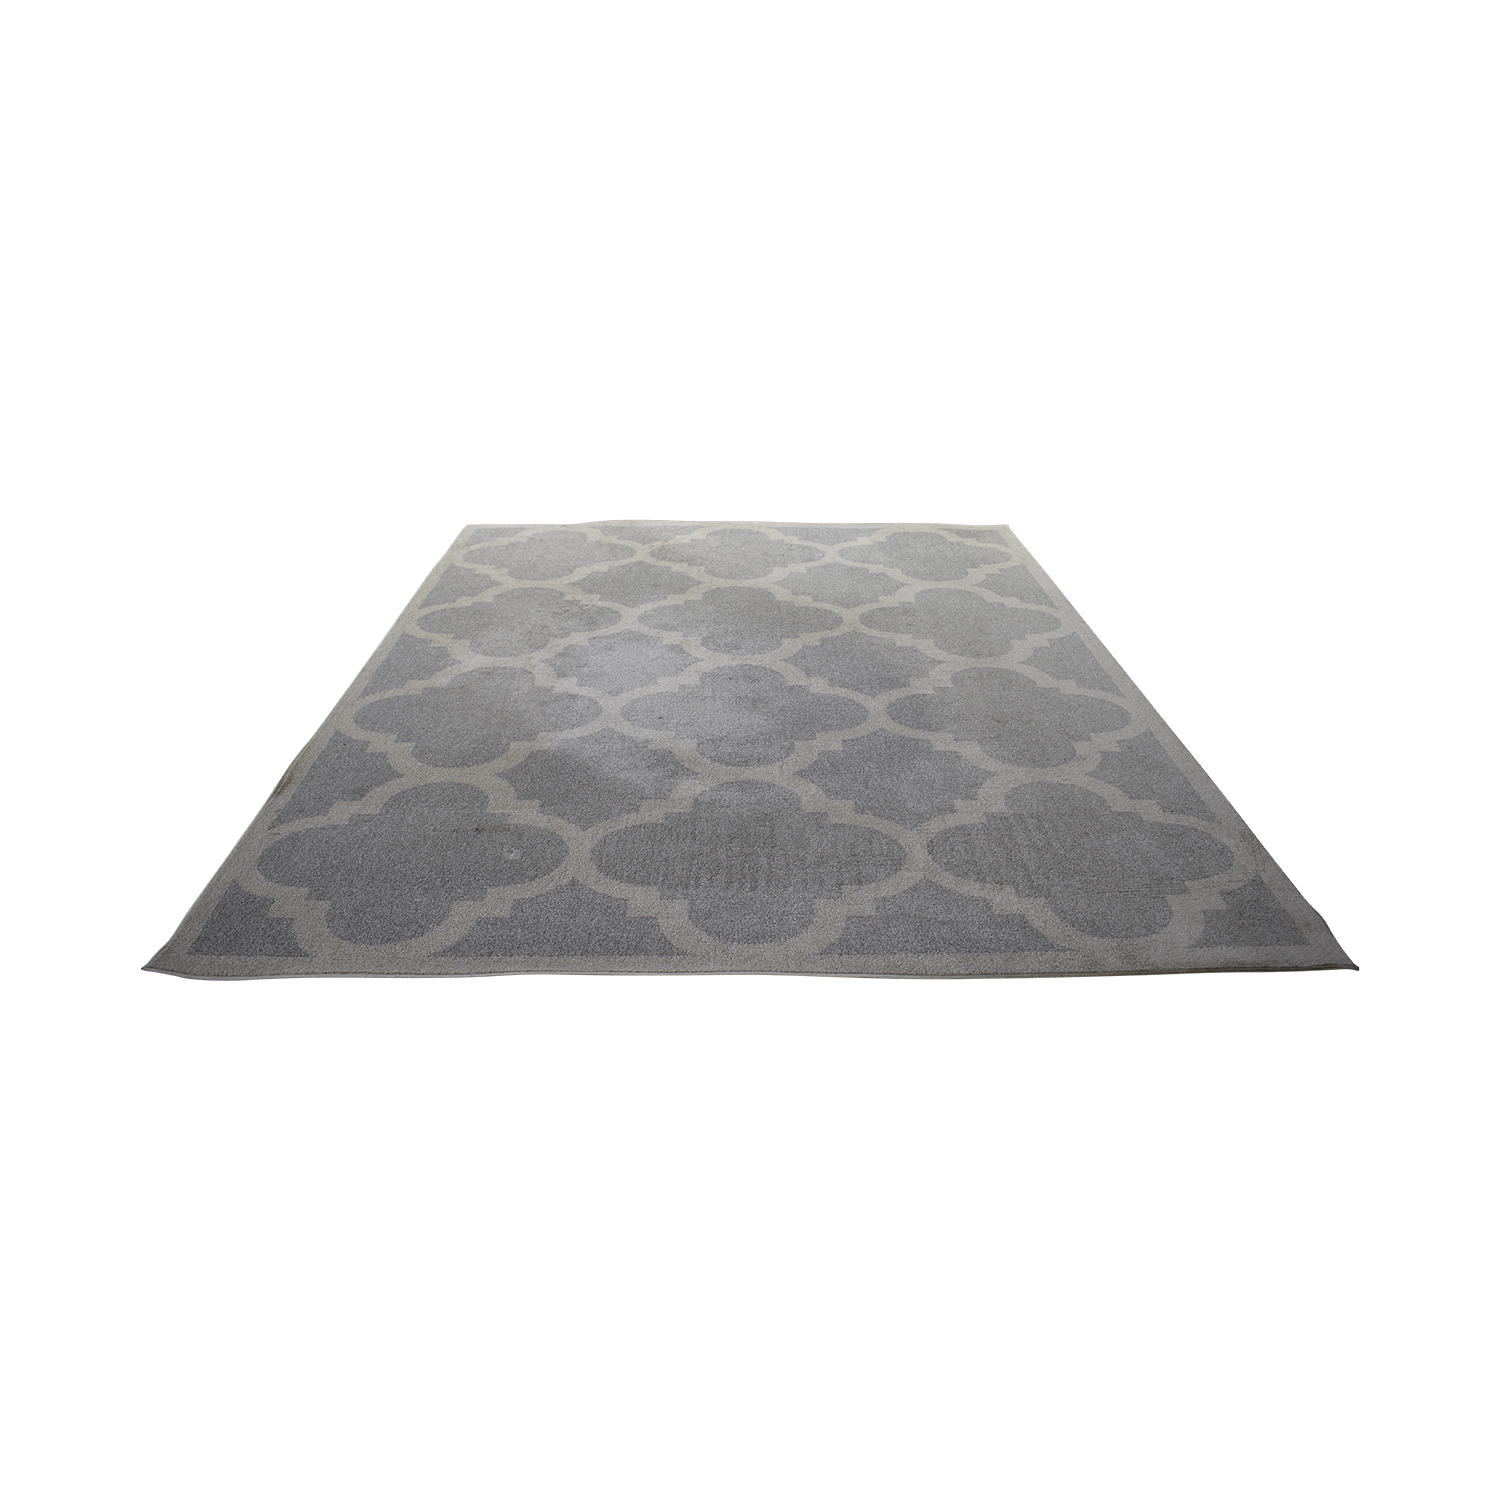 Safavieh Safavieh Gray and White Rug price